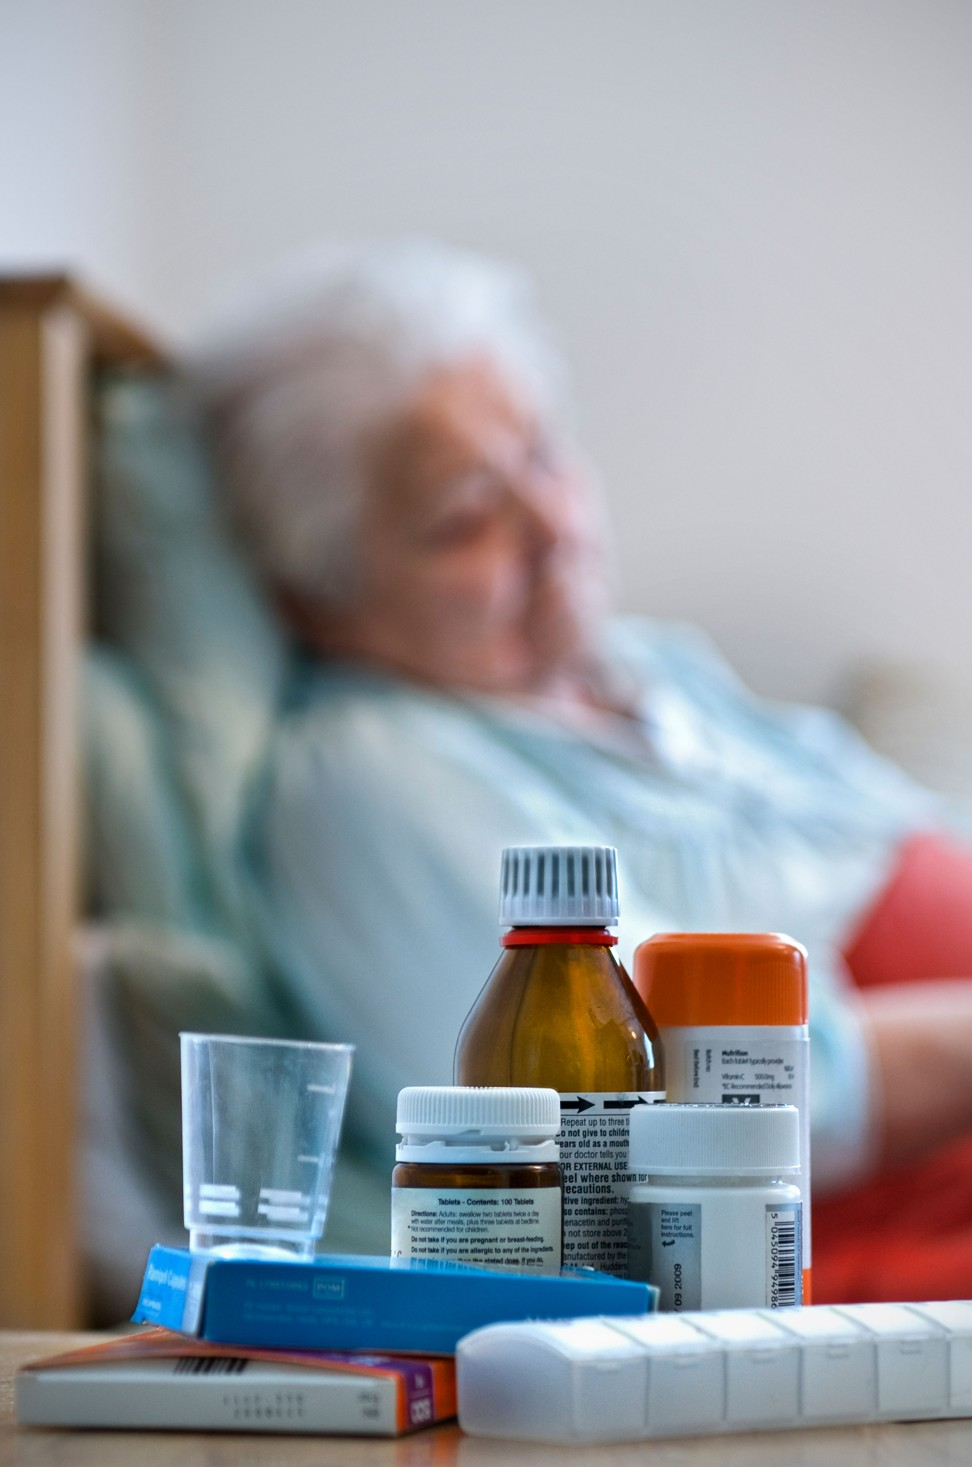 How some medicines cause side effects that imitate dementia in the